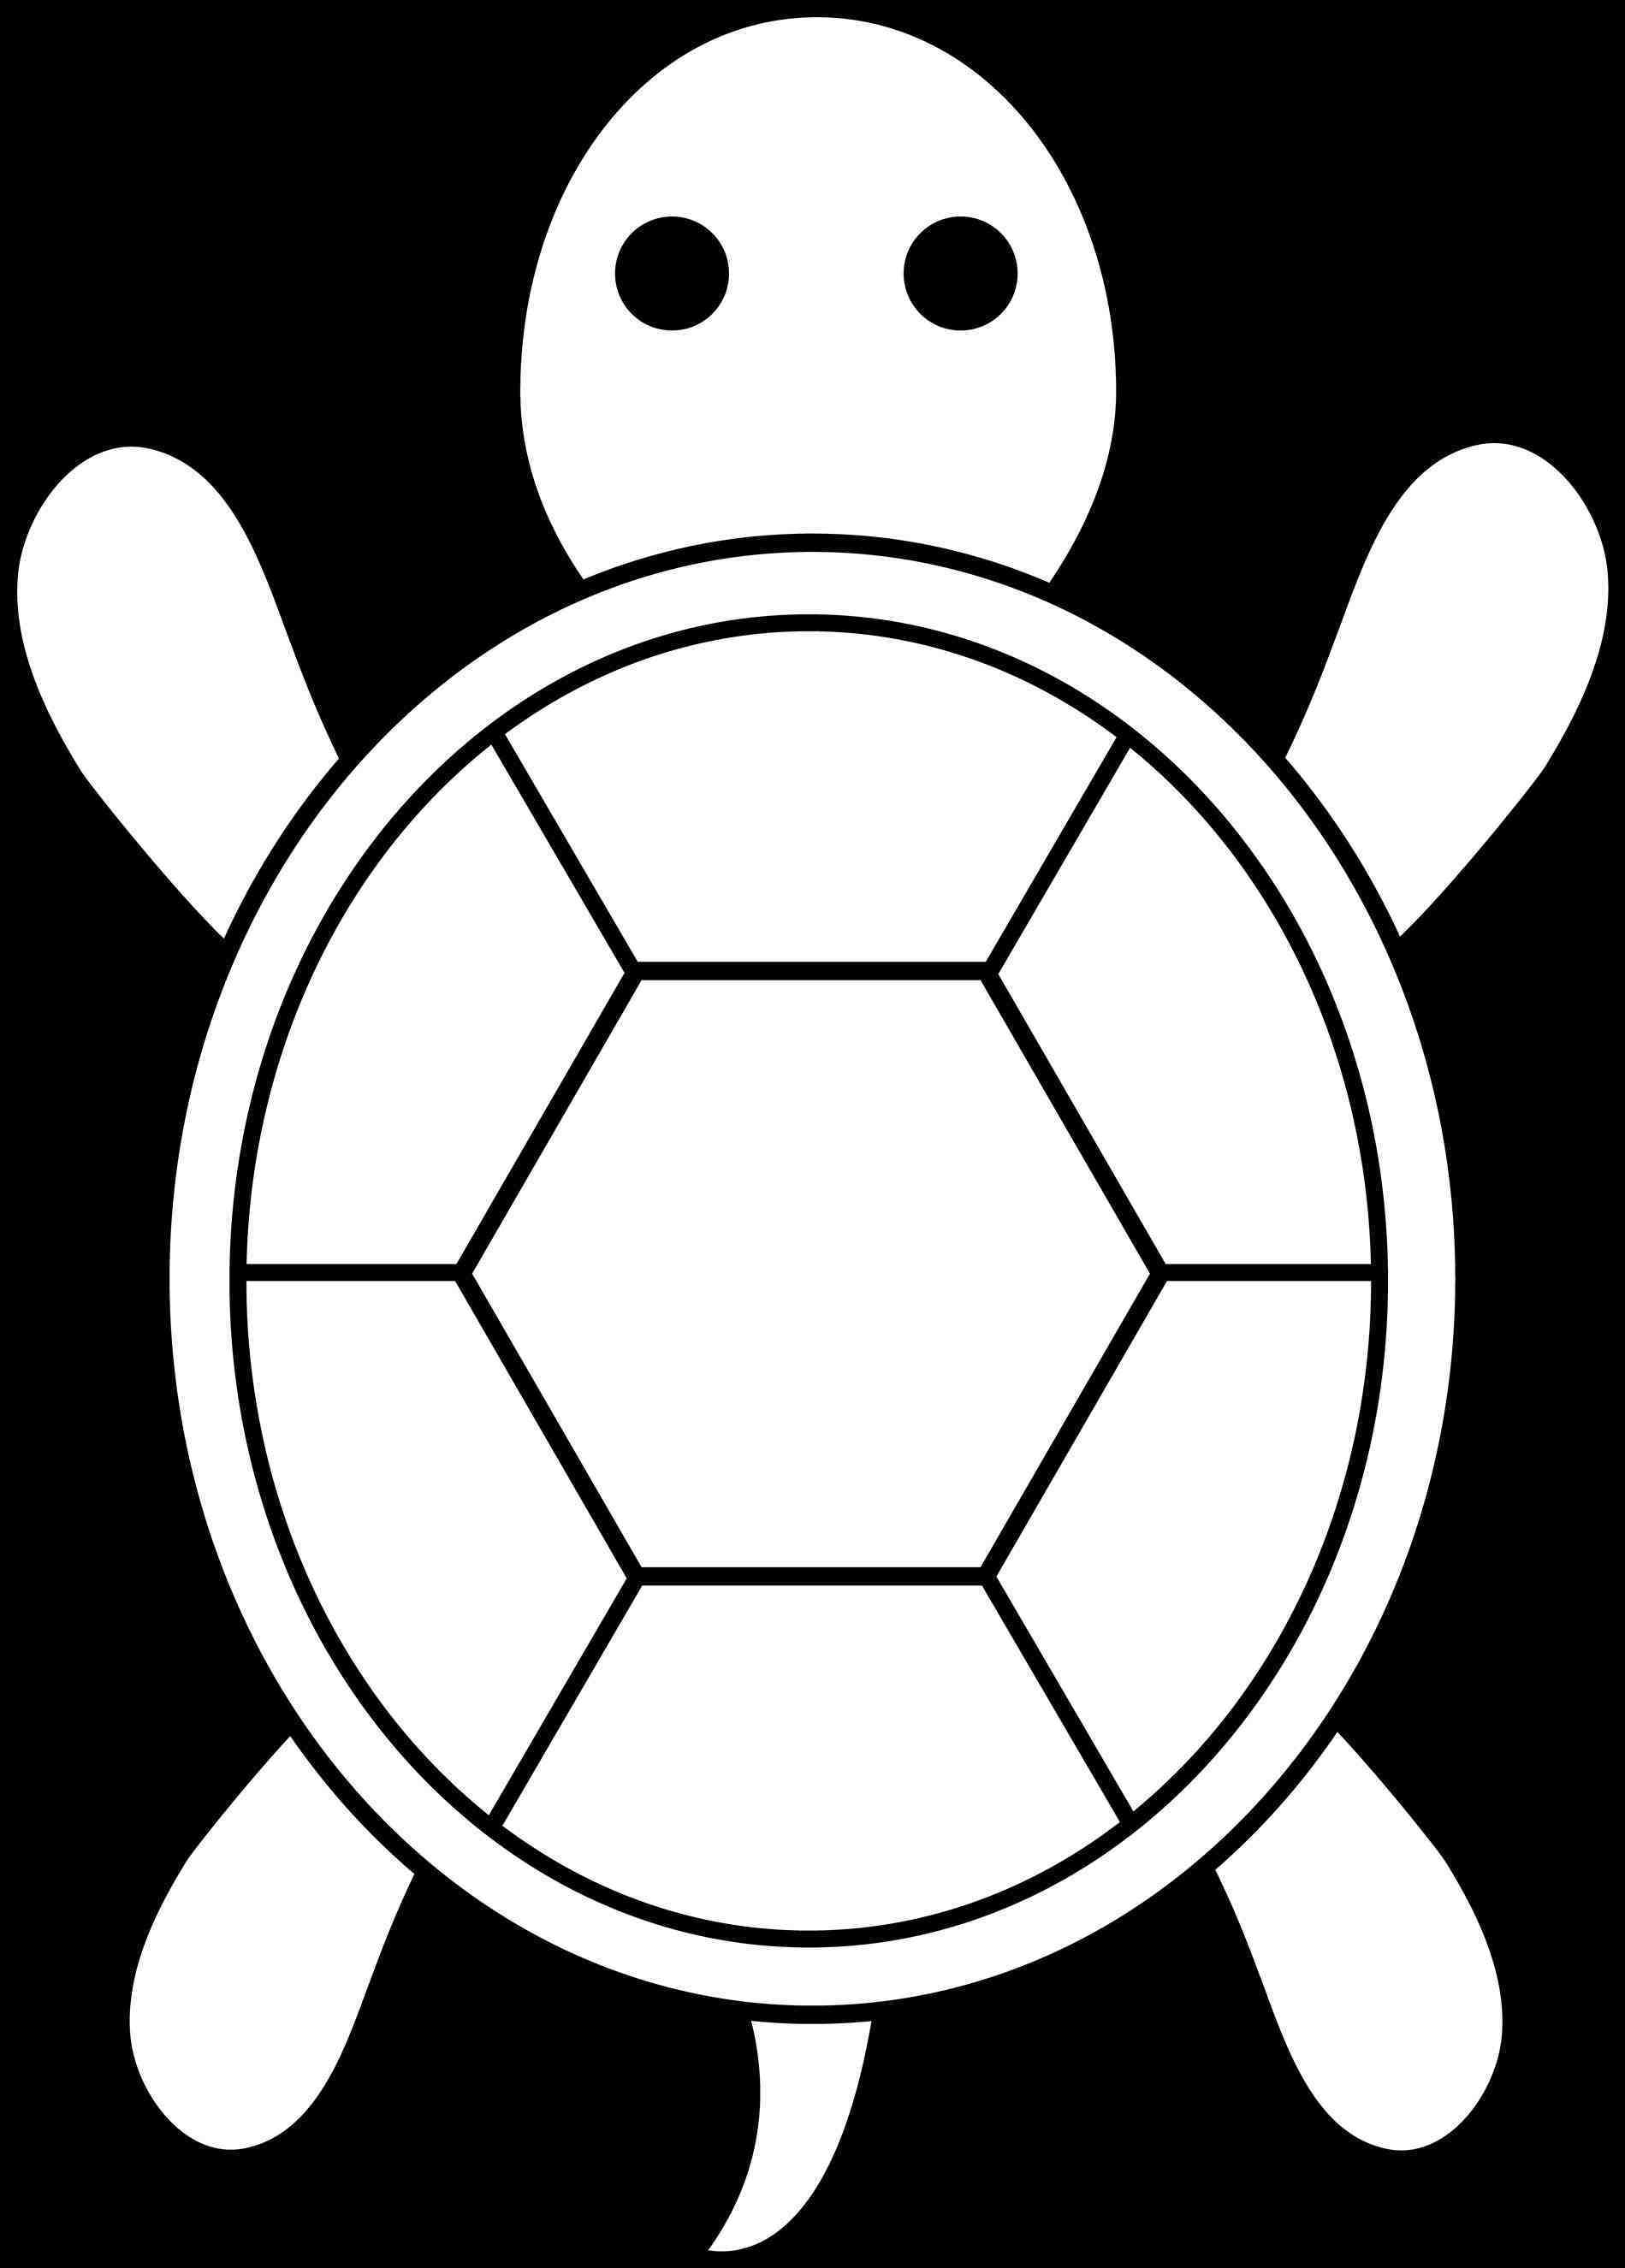 Turtle Shell Silhouette At Getdrawings